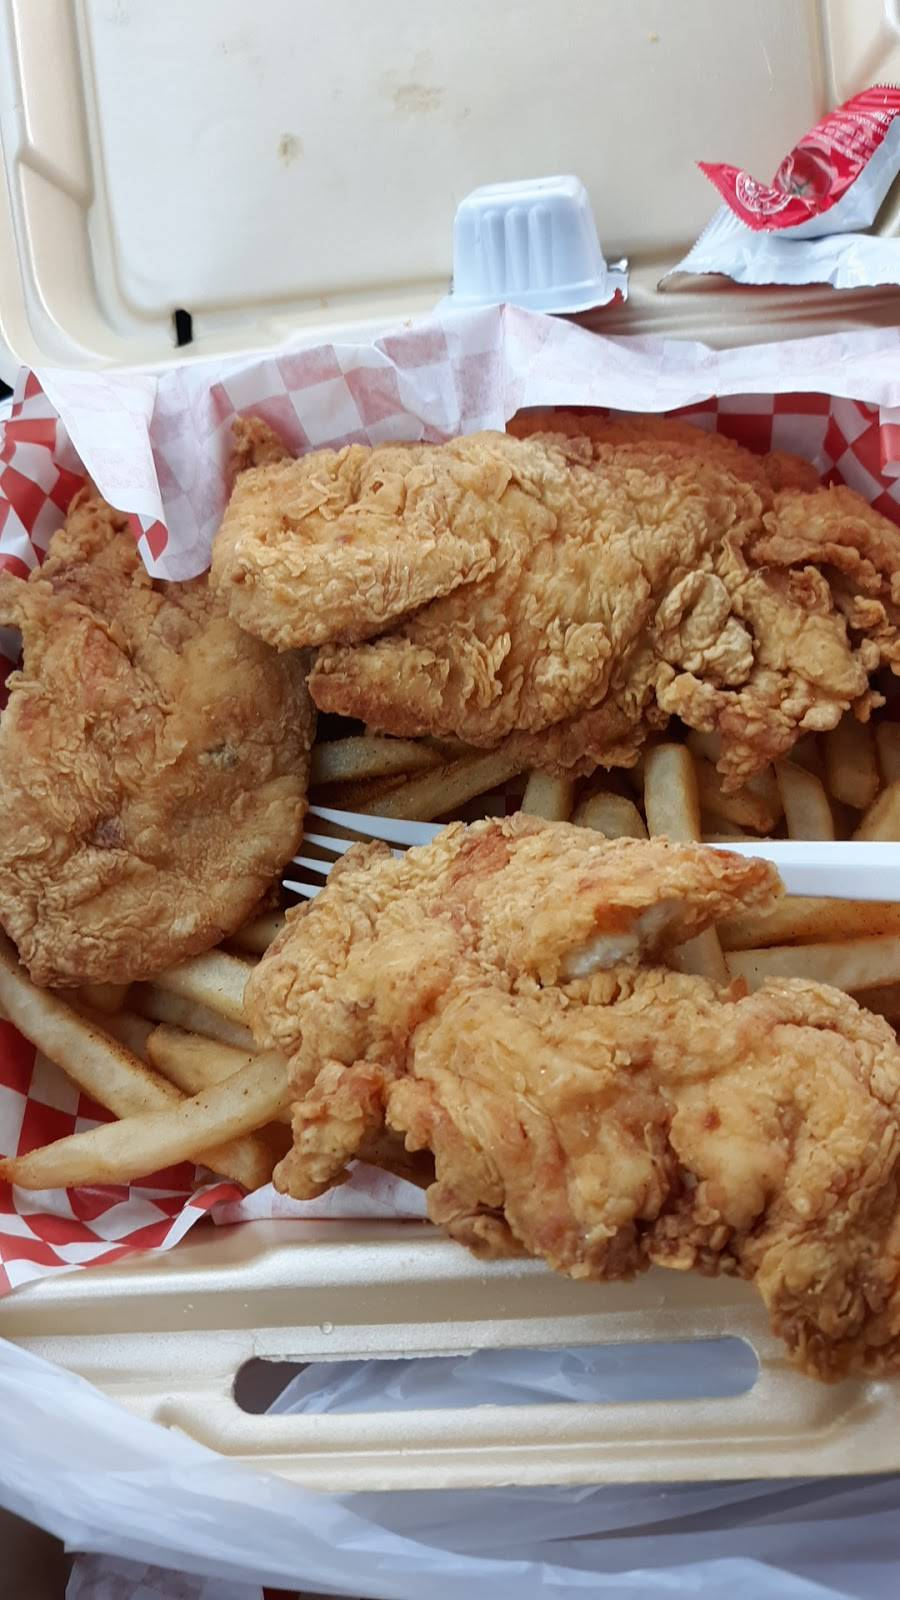 Sams Southern Eatery   restaurant   610 S Burnside Ave, Gonzales, LA 70737, USA   2254501767 OR +1 225-450-1767